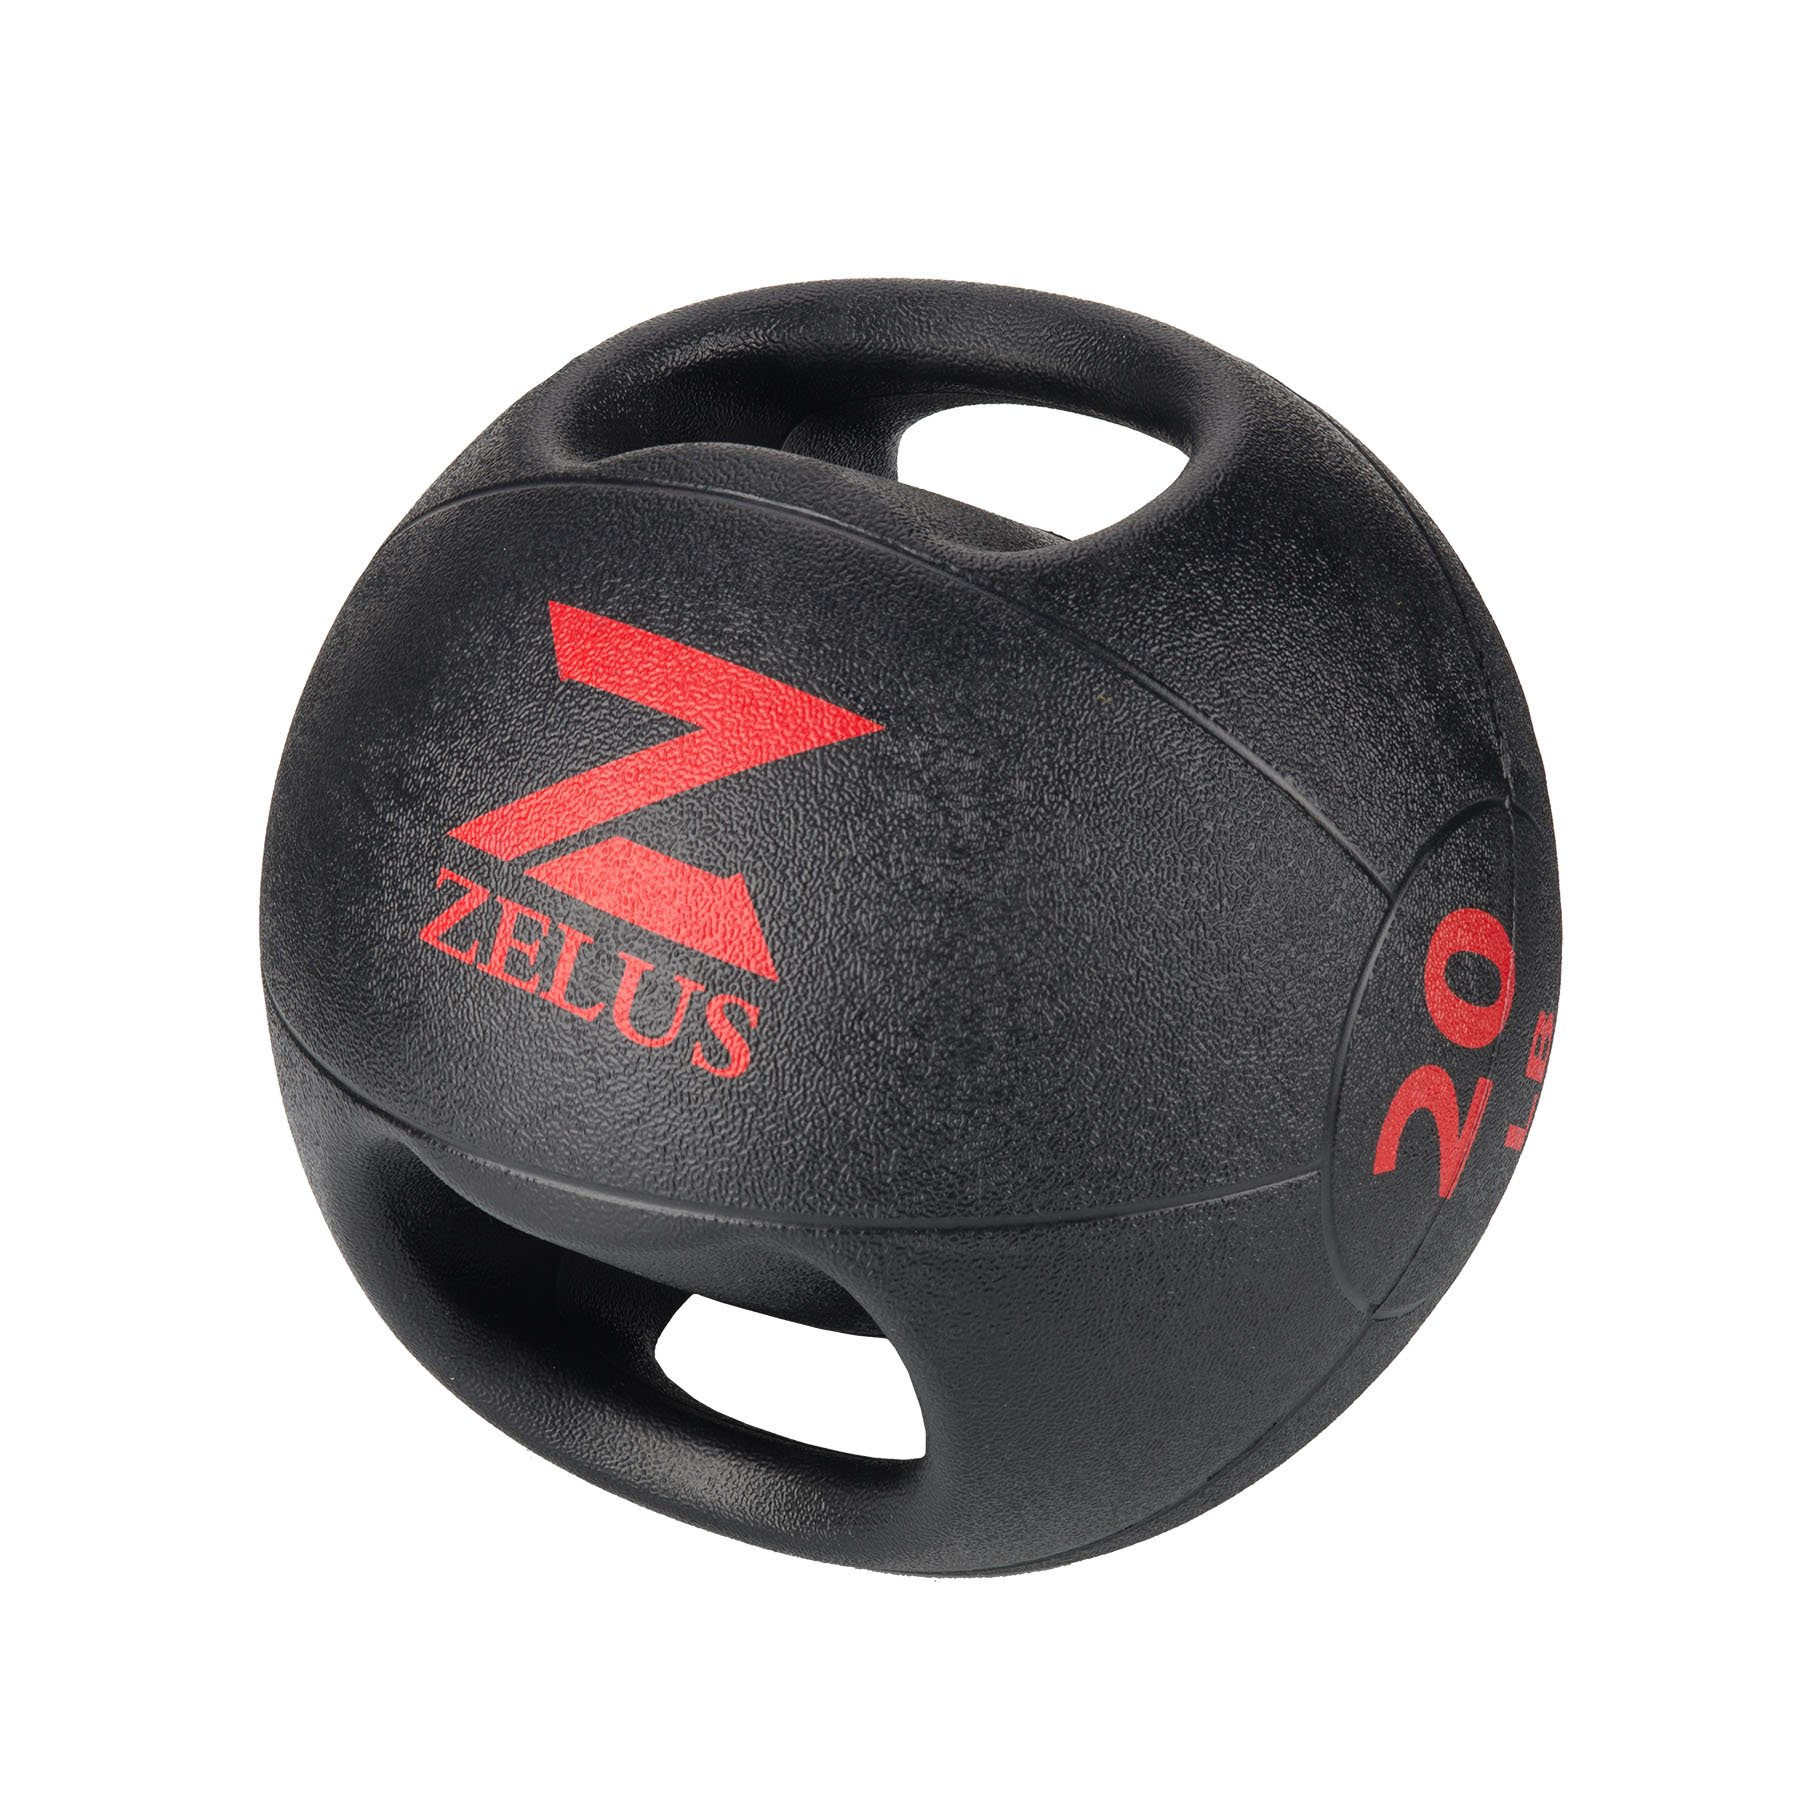 ZELUS Dual Grip Medicine Ball Weight Exercise Ball with Durable Rubber and Textured Grip for Strength Balance Training - Weight Sizes 10/20 lbs. Available (20.0 Pounds)